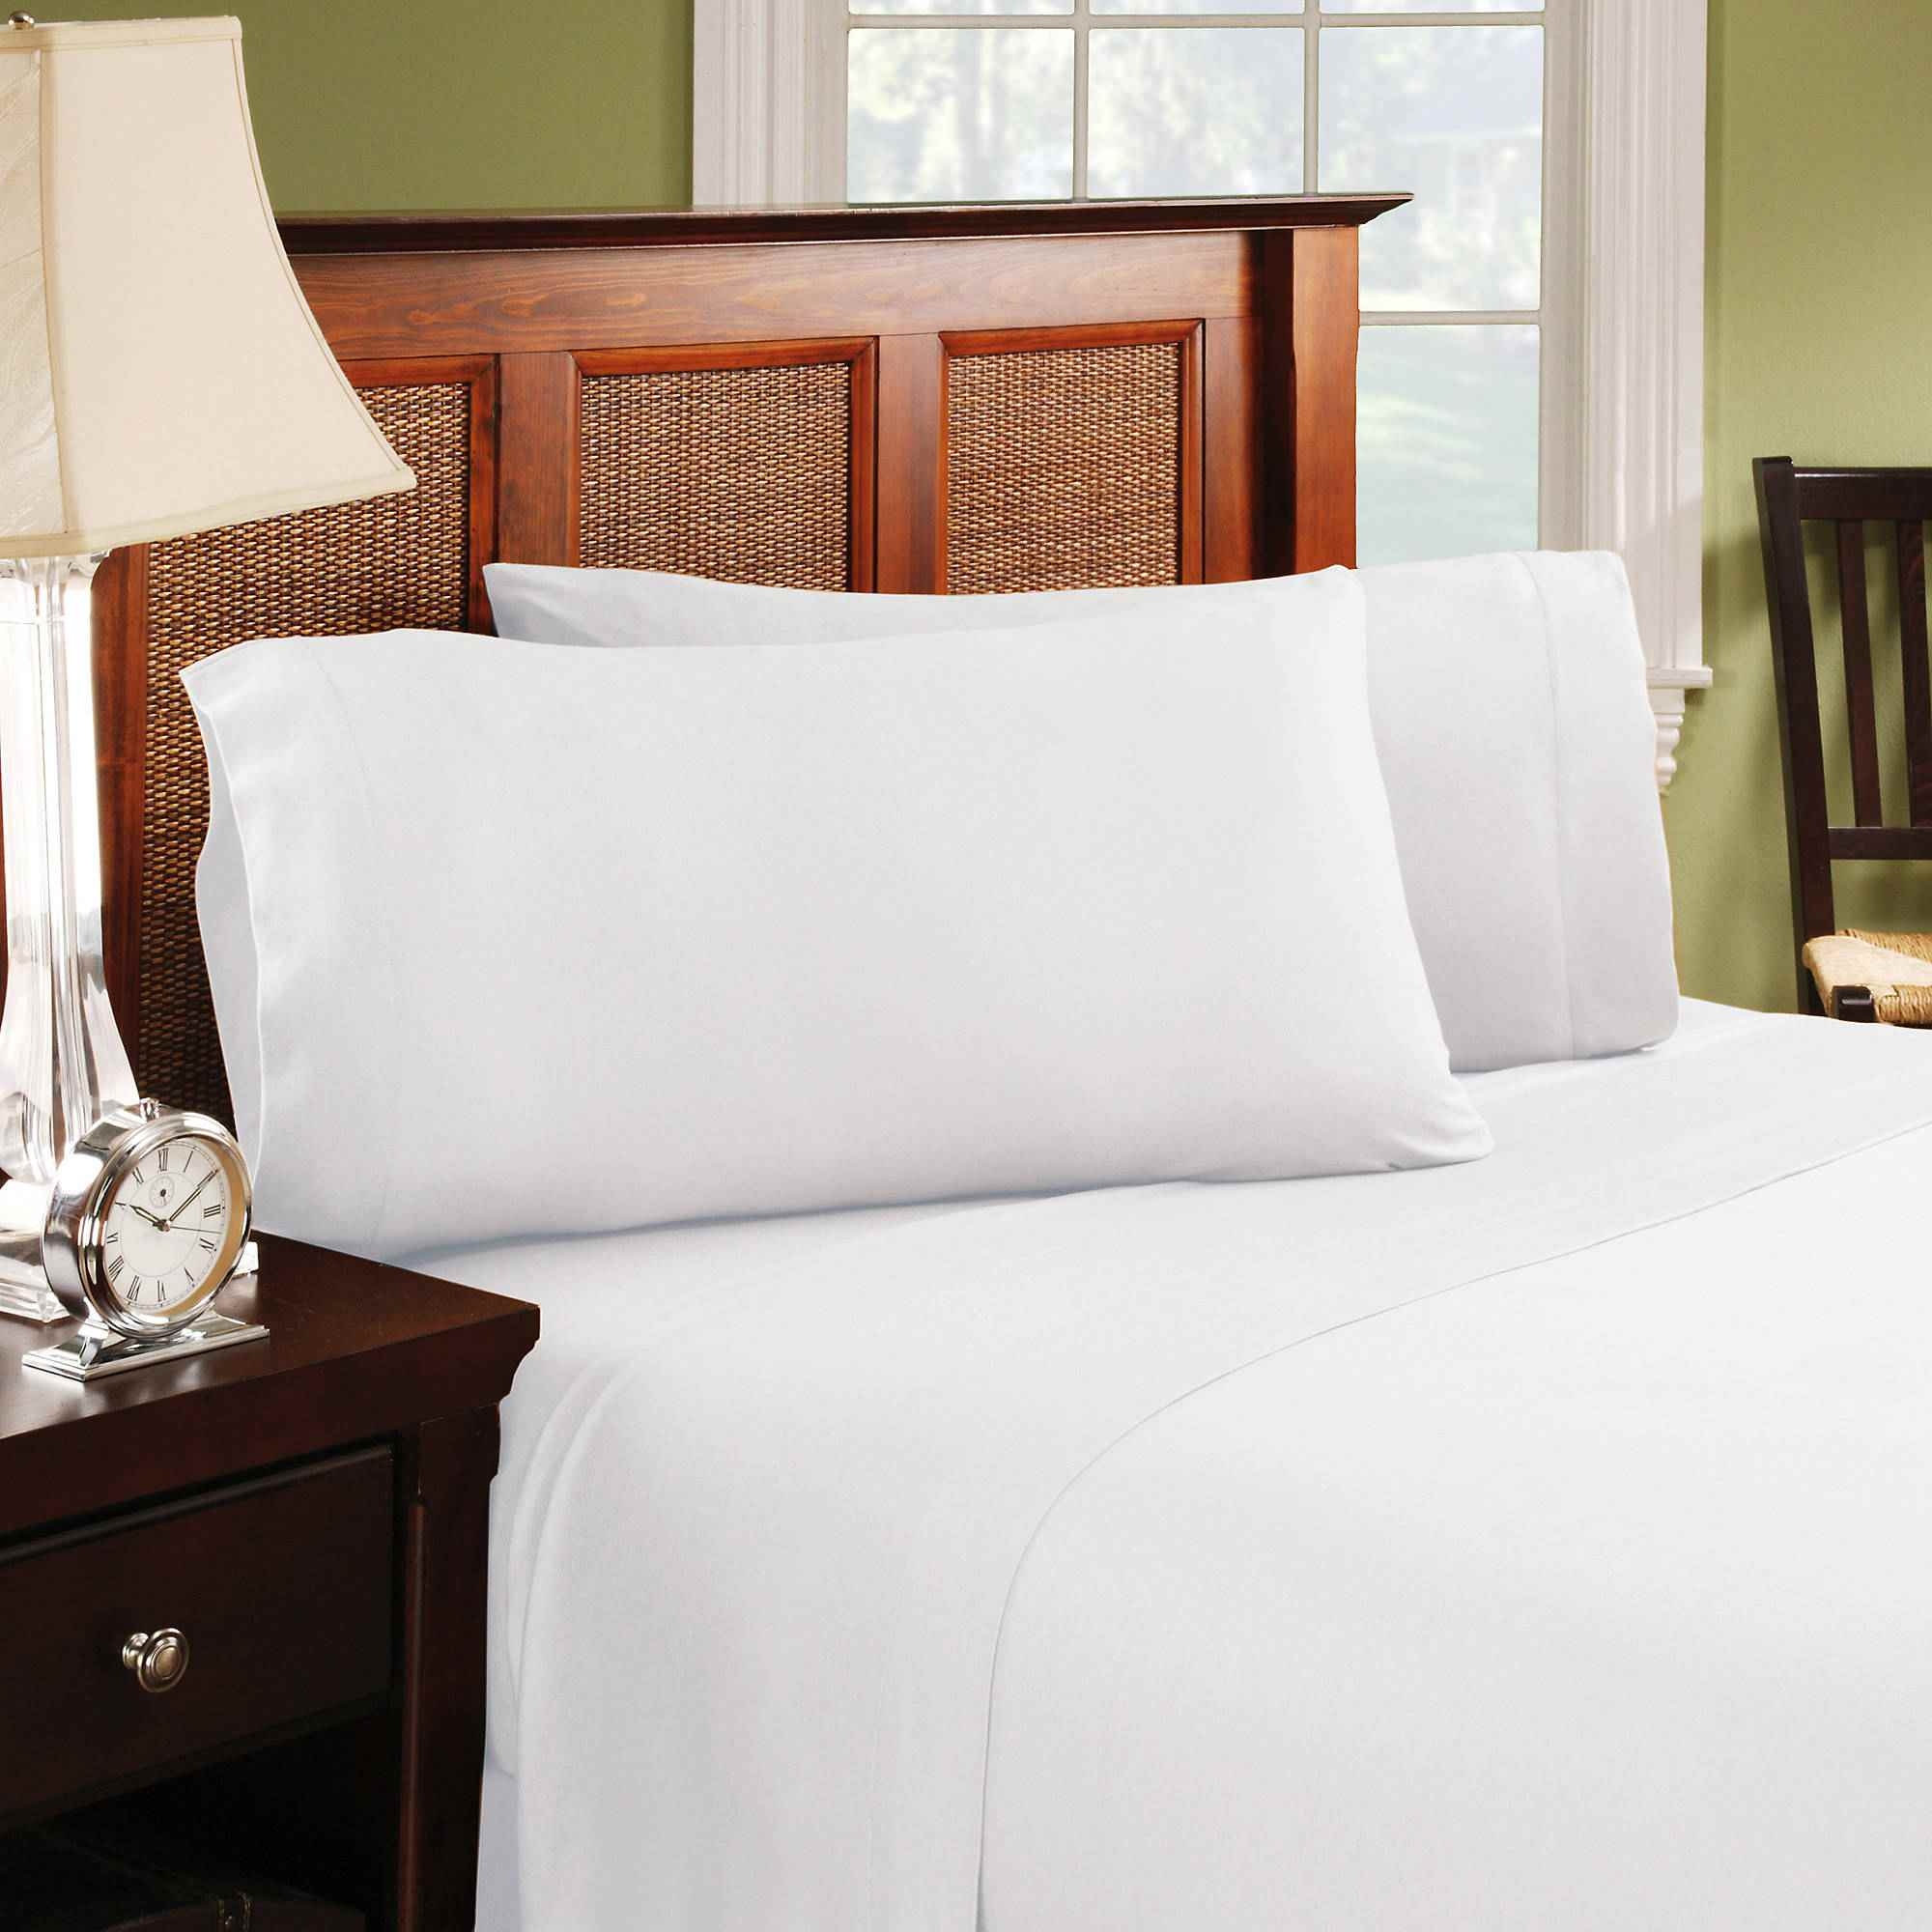 The 9 Best Sheets Sets Of 2019